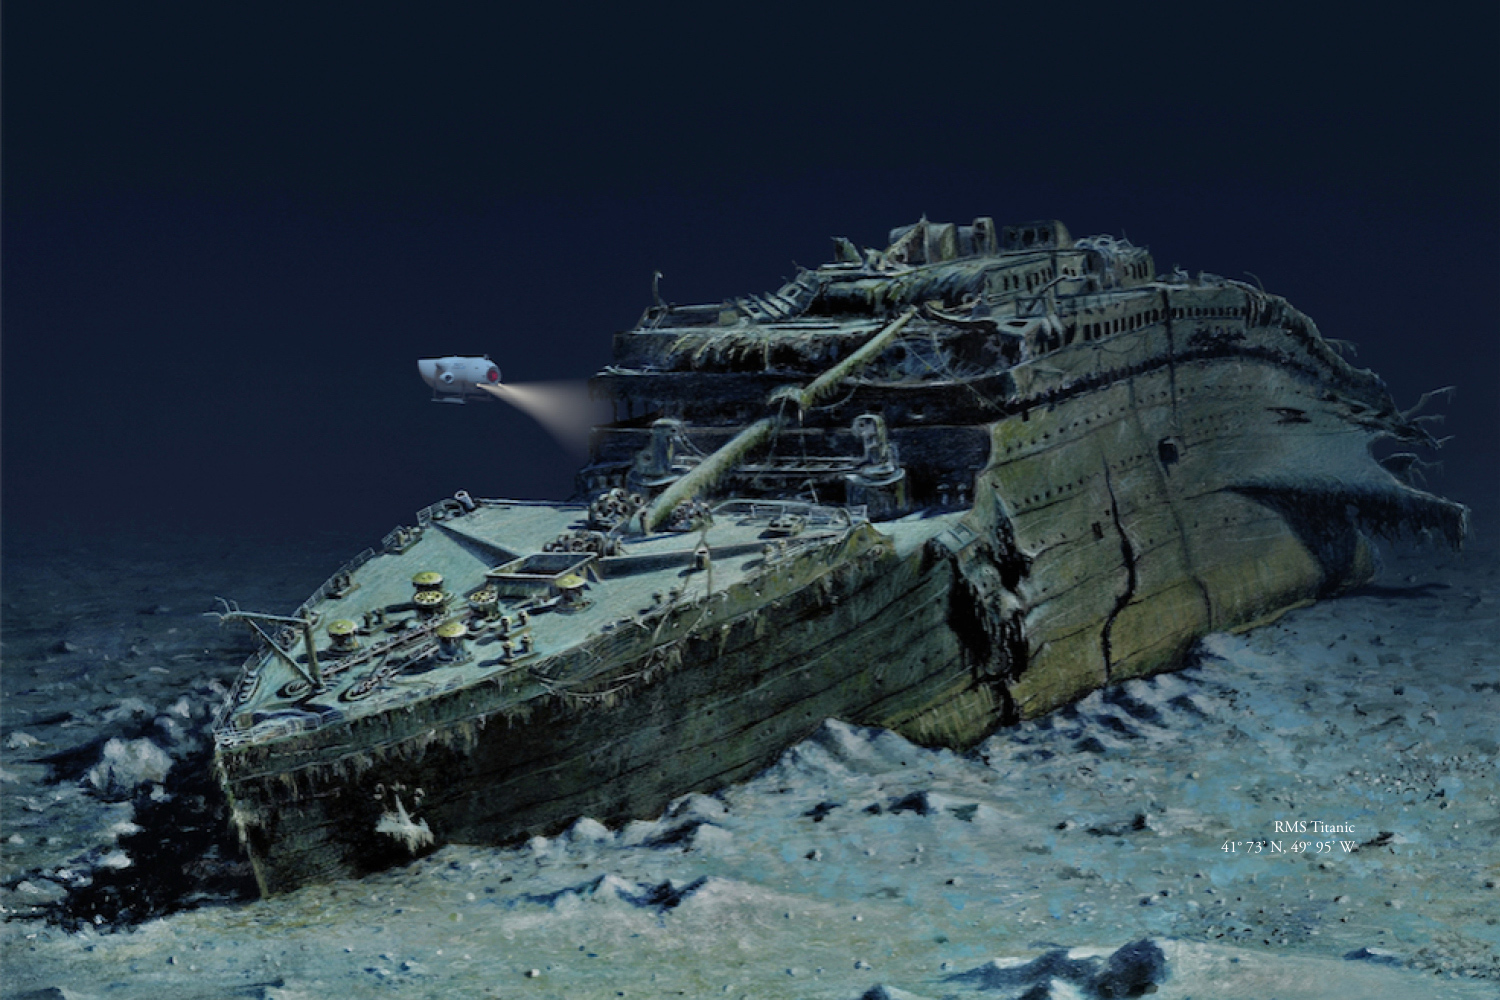 Dive the Site of the Infamous Titanic Shipwreck Next Spring